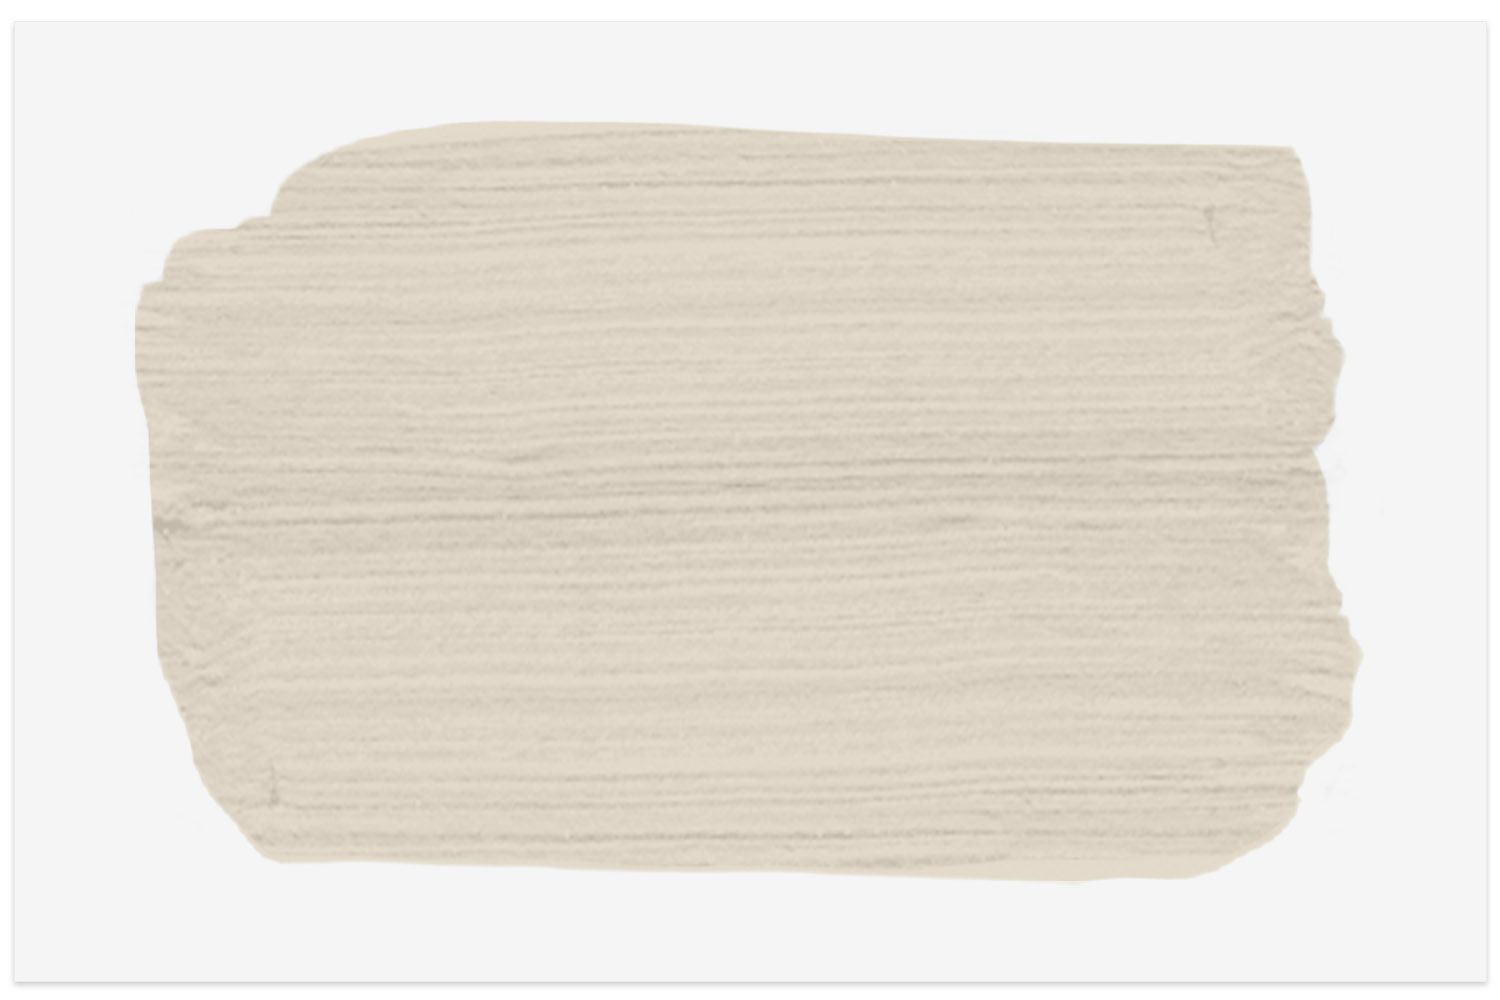 Neutral Ground paint swatch from Sherwin-Williams